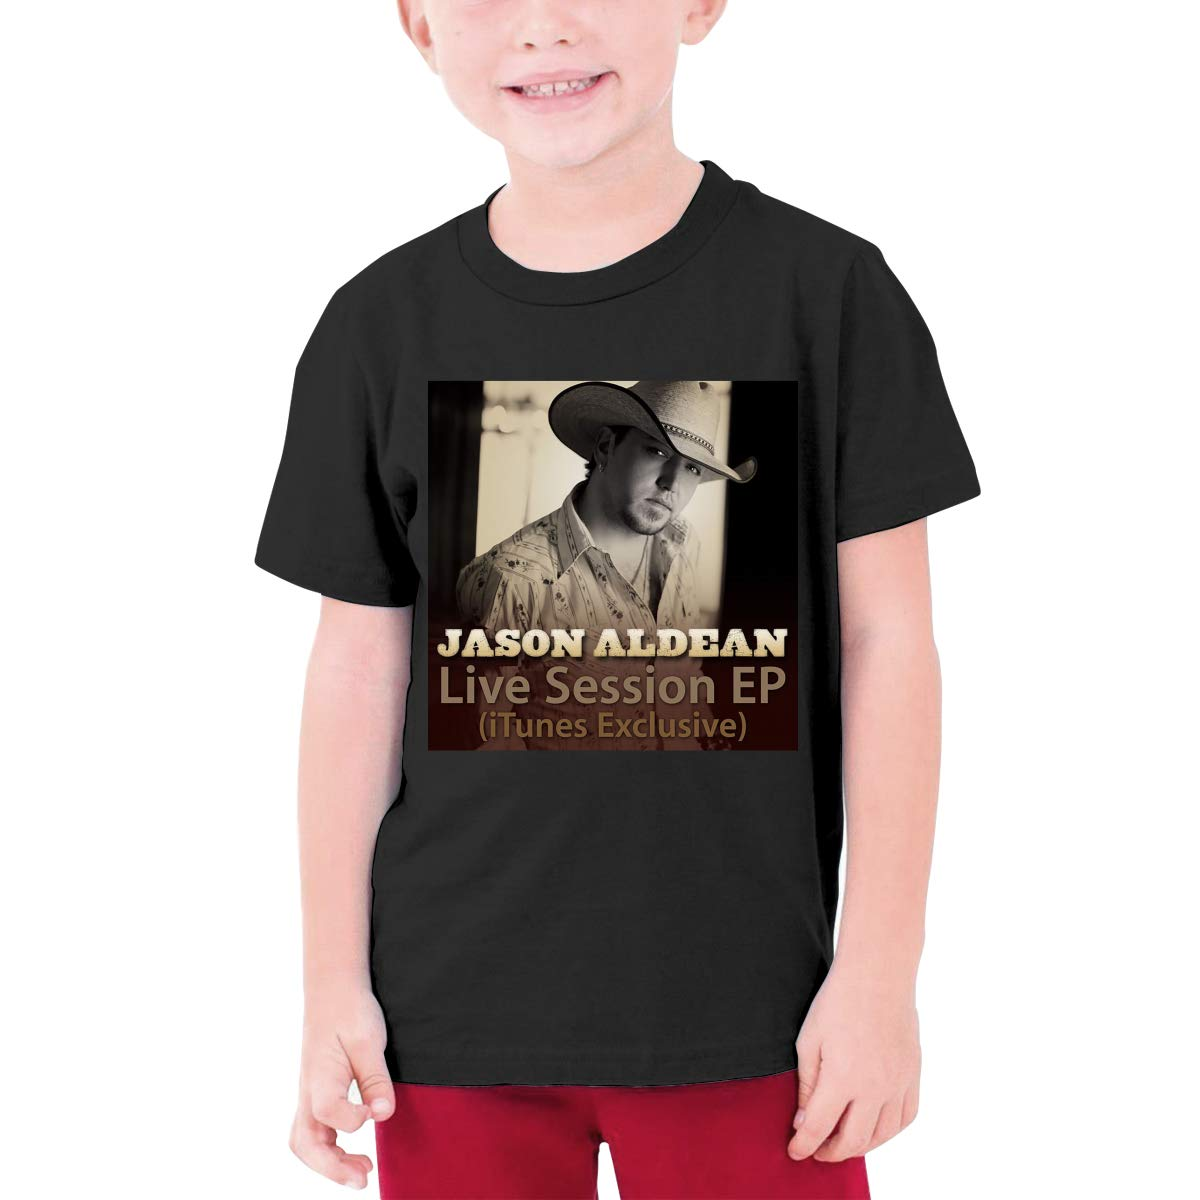 Kangtians Boys Jason Aldean T-Shirt Childrens Short Sleeve Shirt